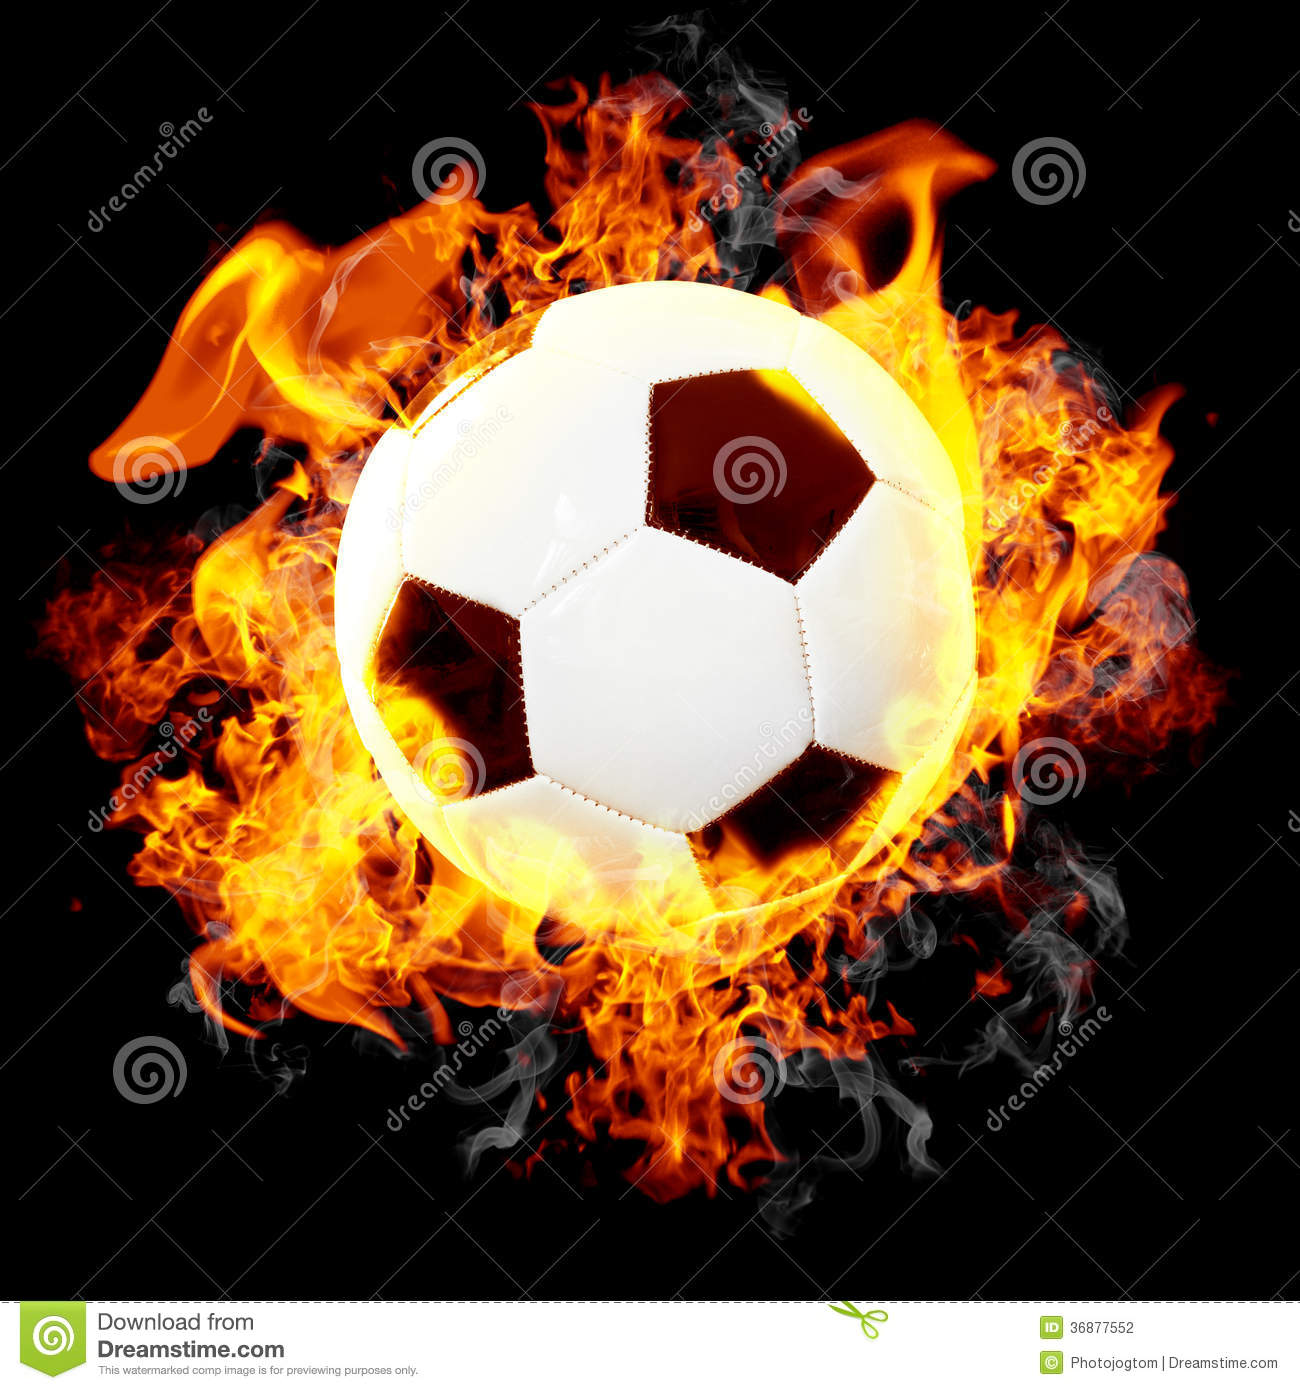 Download Pallone Da Calcio Bruciante Illustrazione di Stock - Illustrazione di arte, illustrazione: 36877552